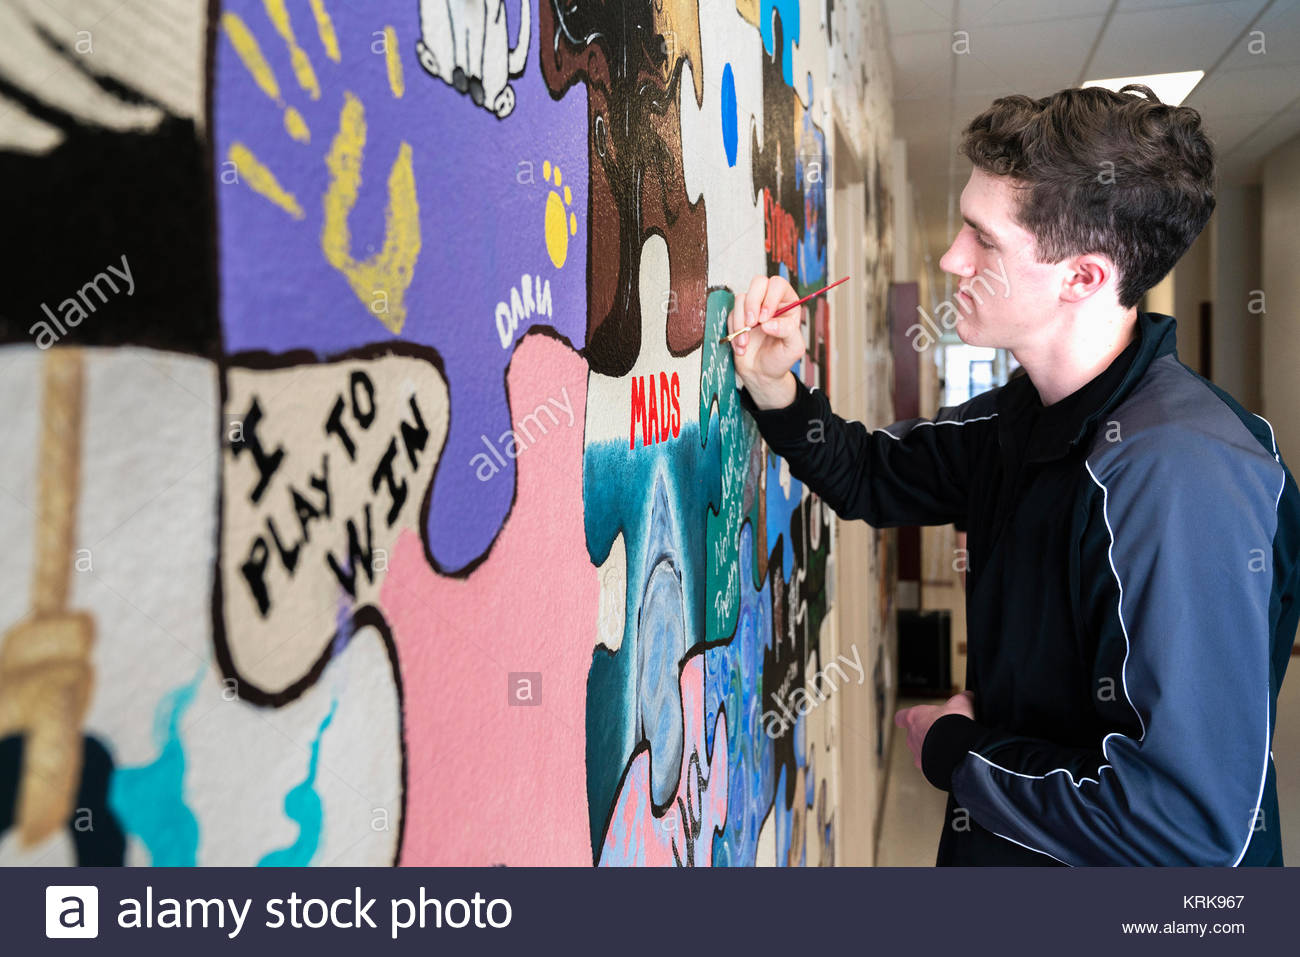 Man painting mural on wall - Stock Image